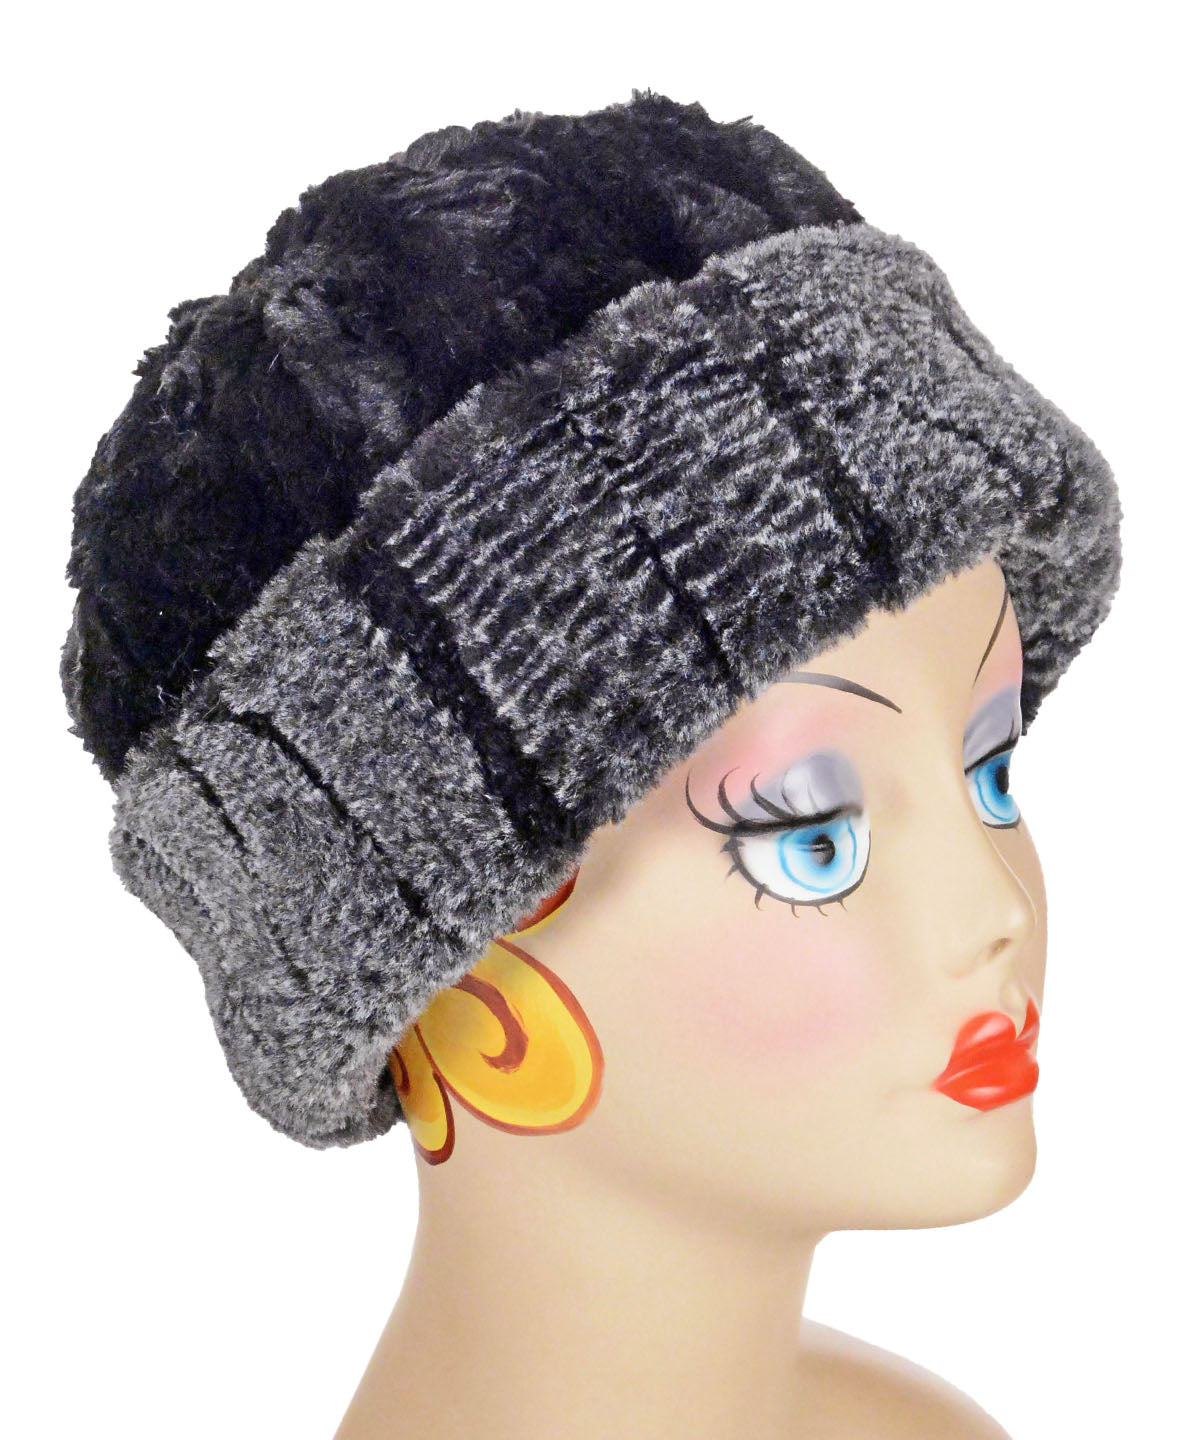 Beanie Hat, Reversible - Luxury Faux Fur in Rattlesnake Ridge (Limited Availability)